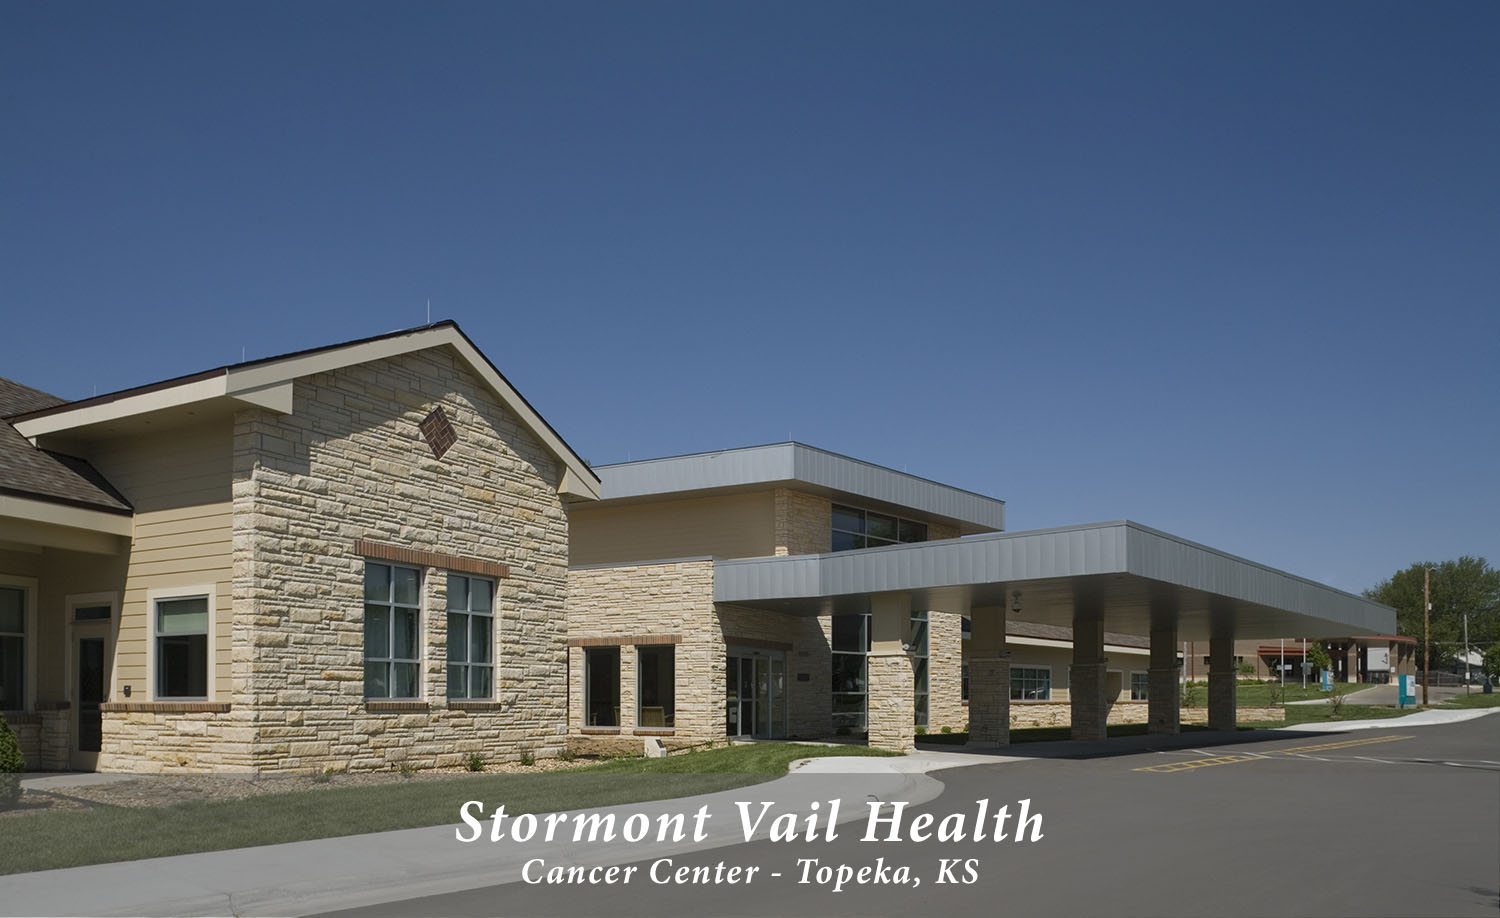 SVHC Cancer Center with Text.jpg